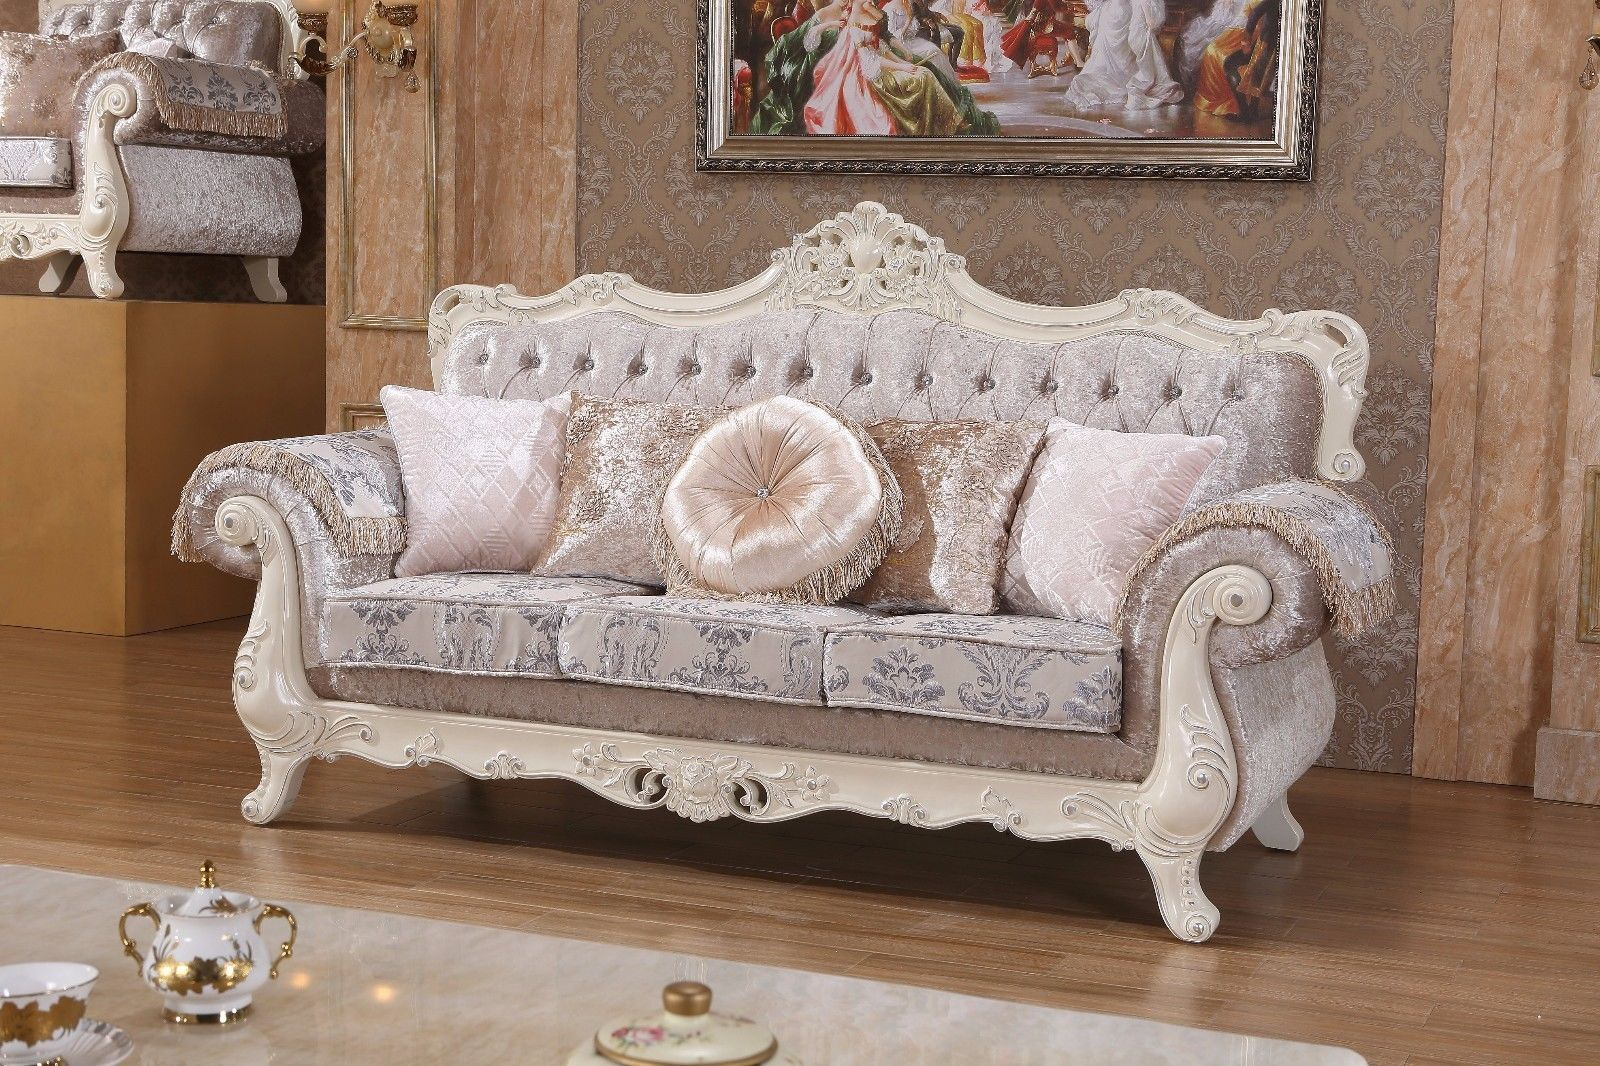 Meridian 638 Venice Living Room Sofa in Silver Crystal Traditional Style